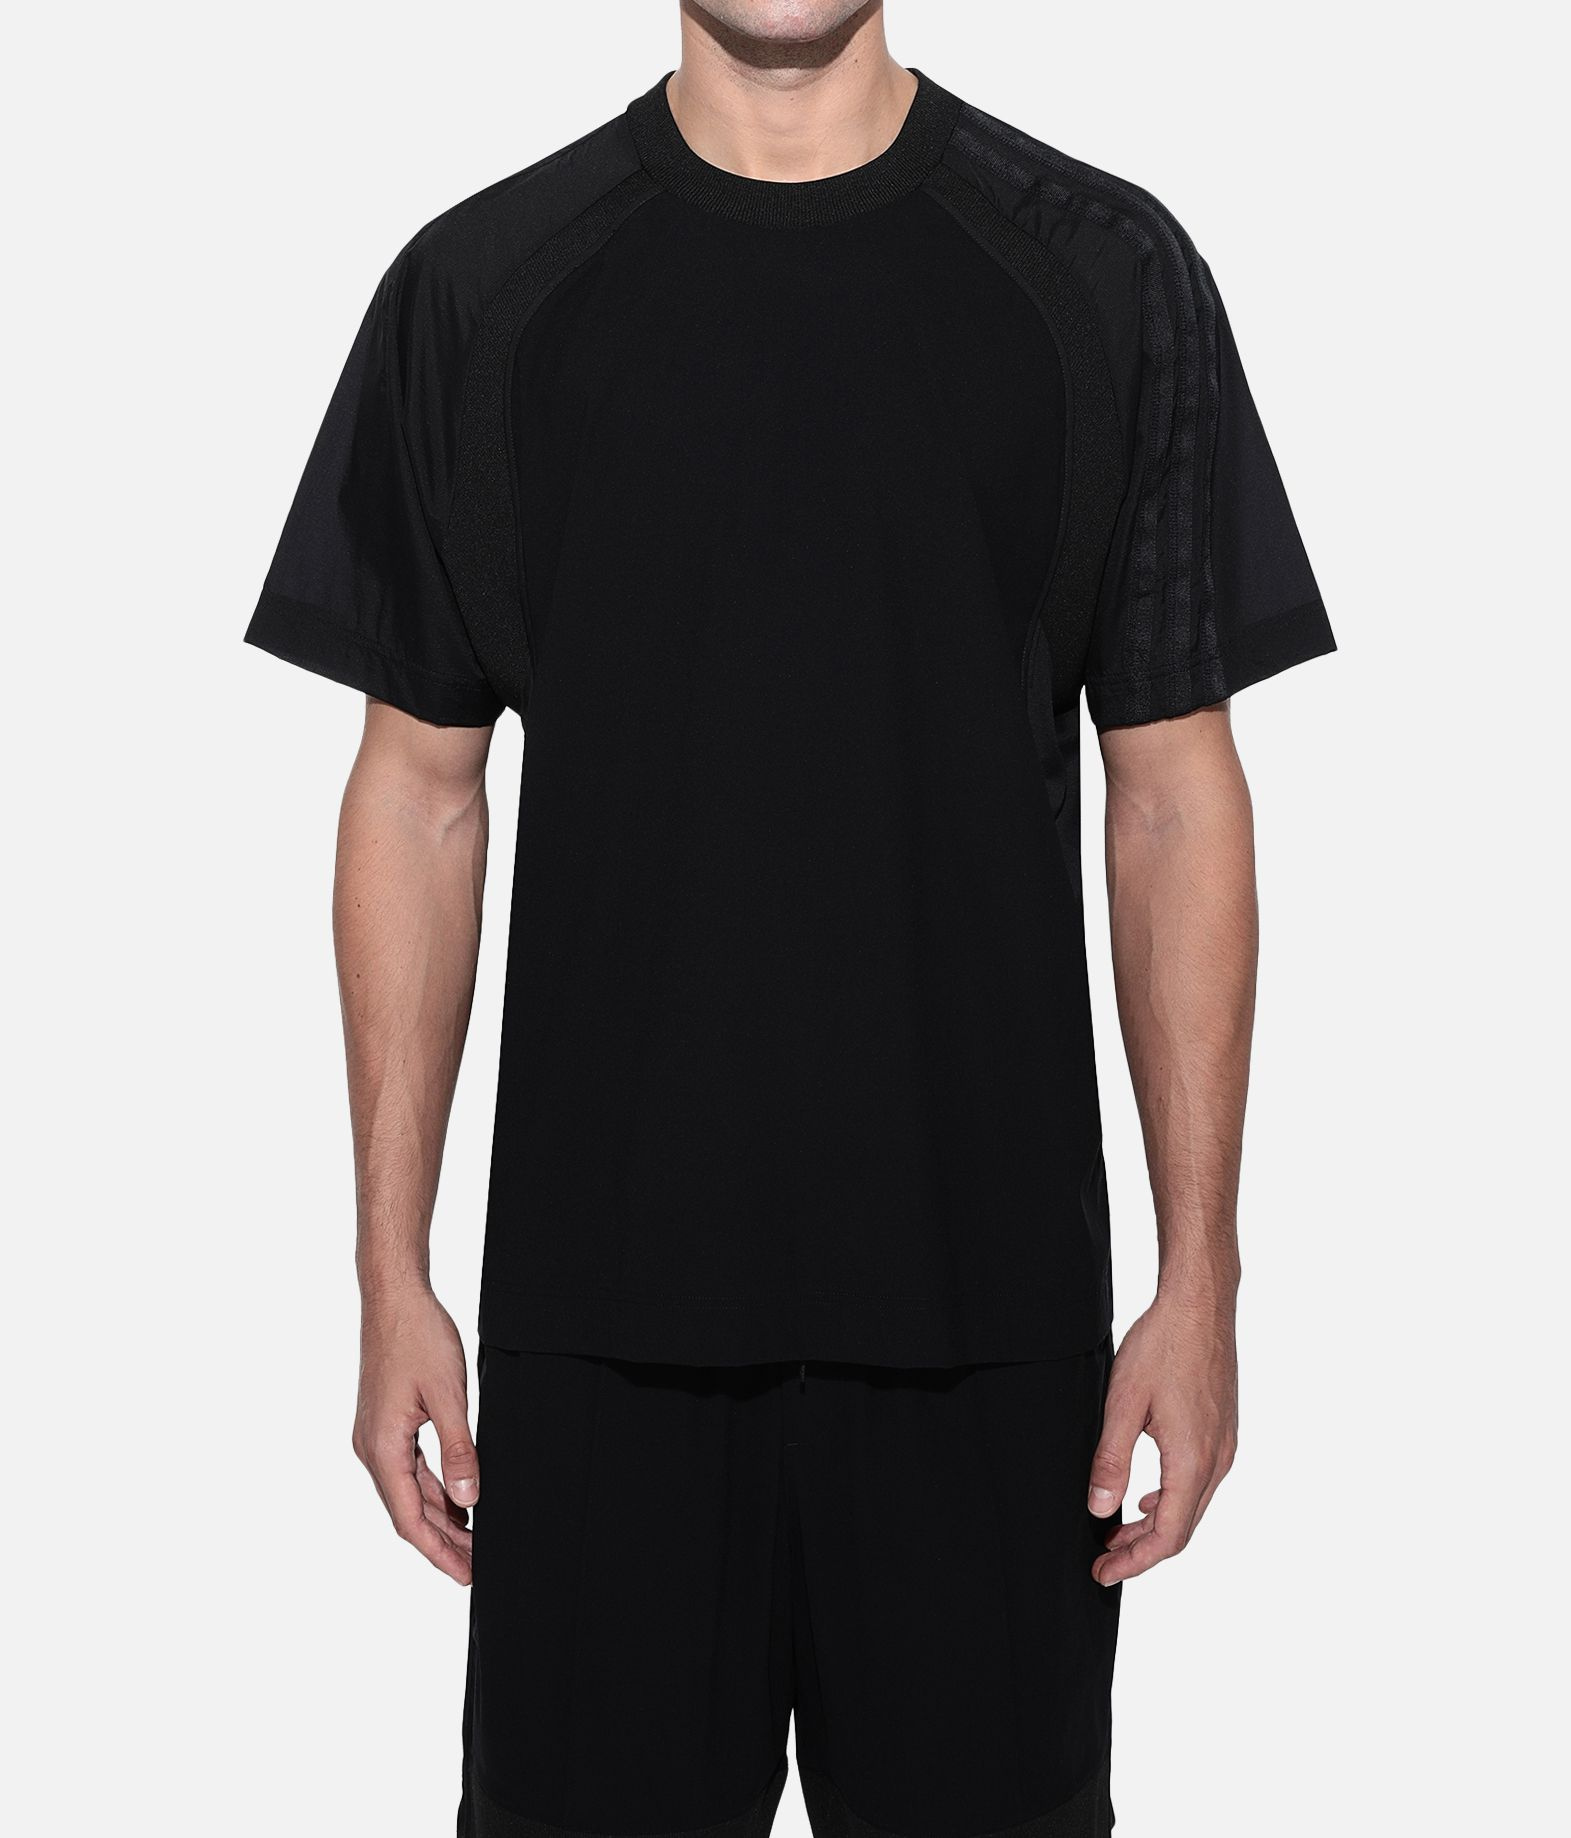 Y-3 Y-3 3-Stripes Material Mix Tee Short sleeve t-shirt Man r